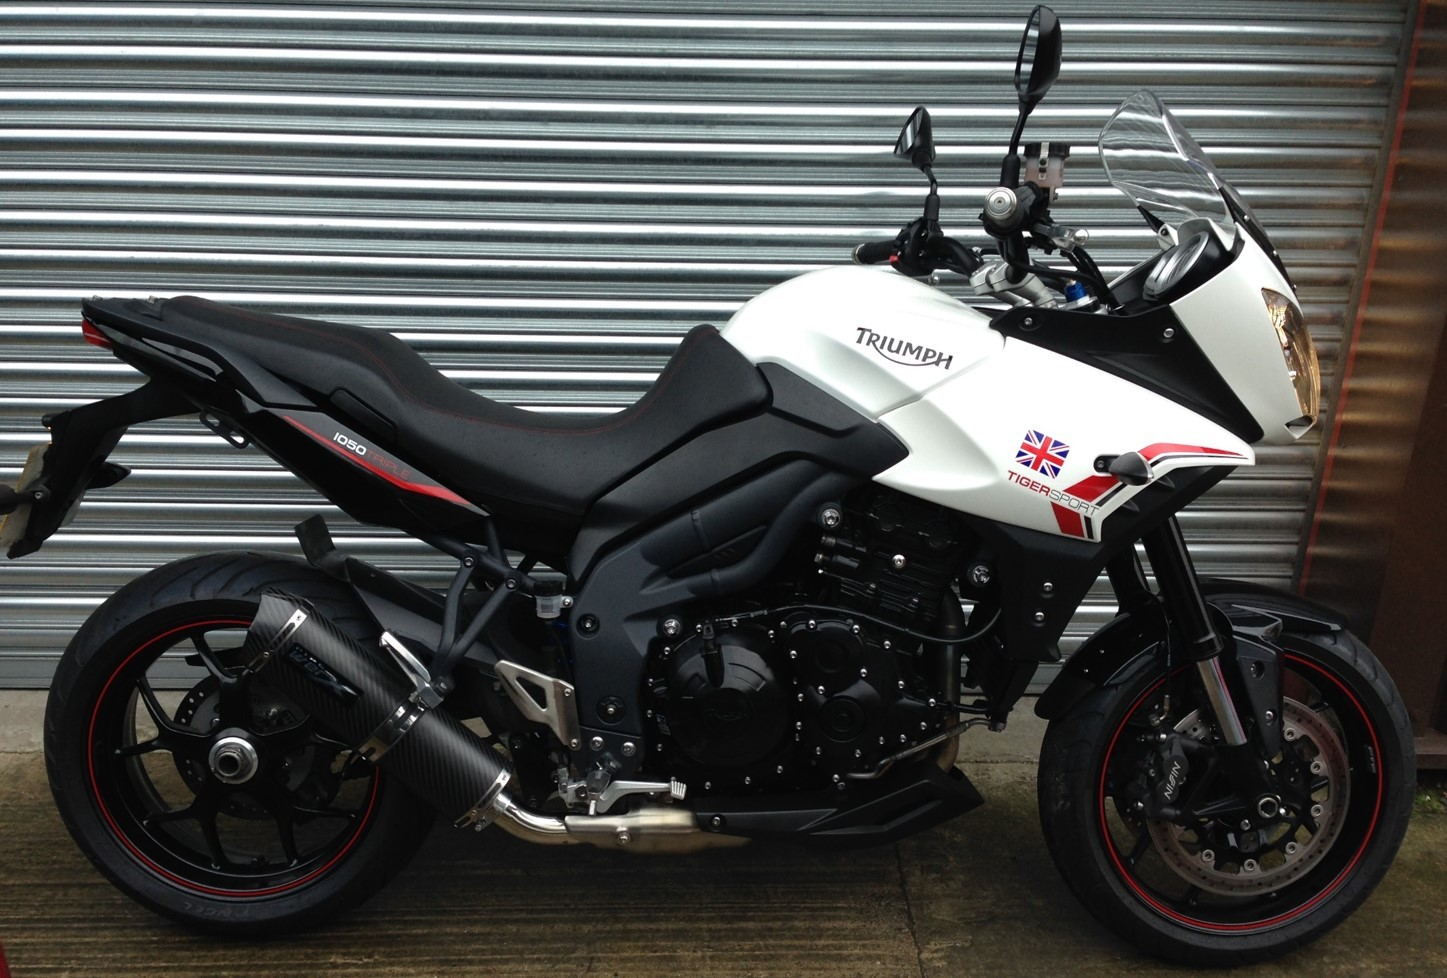 Pipe Werx Triumph Tiger 1050 Low-level Exhaust